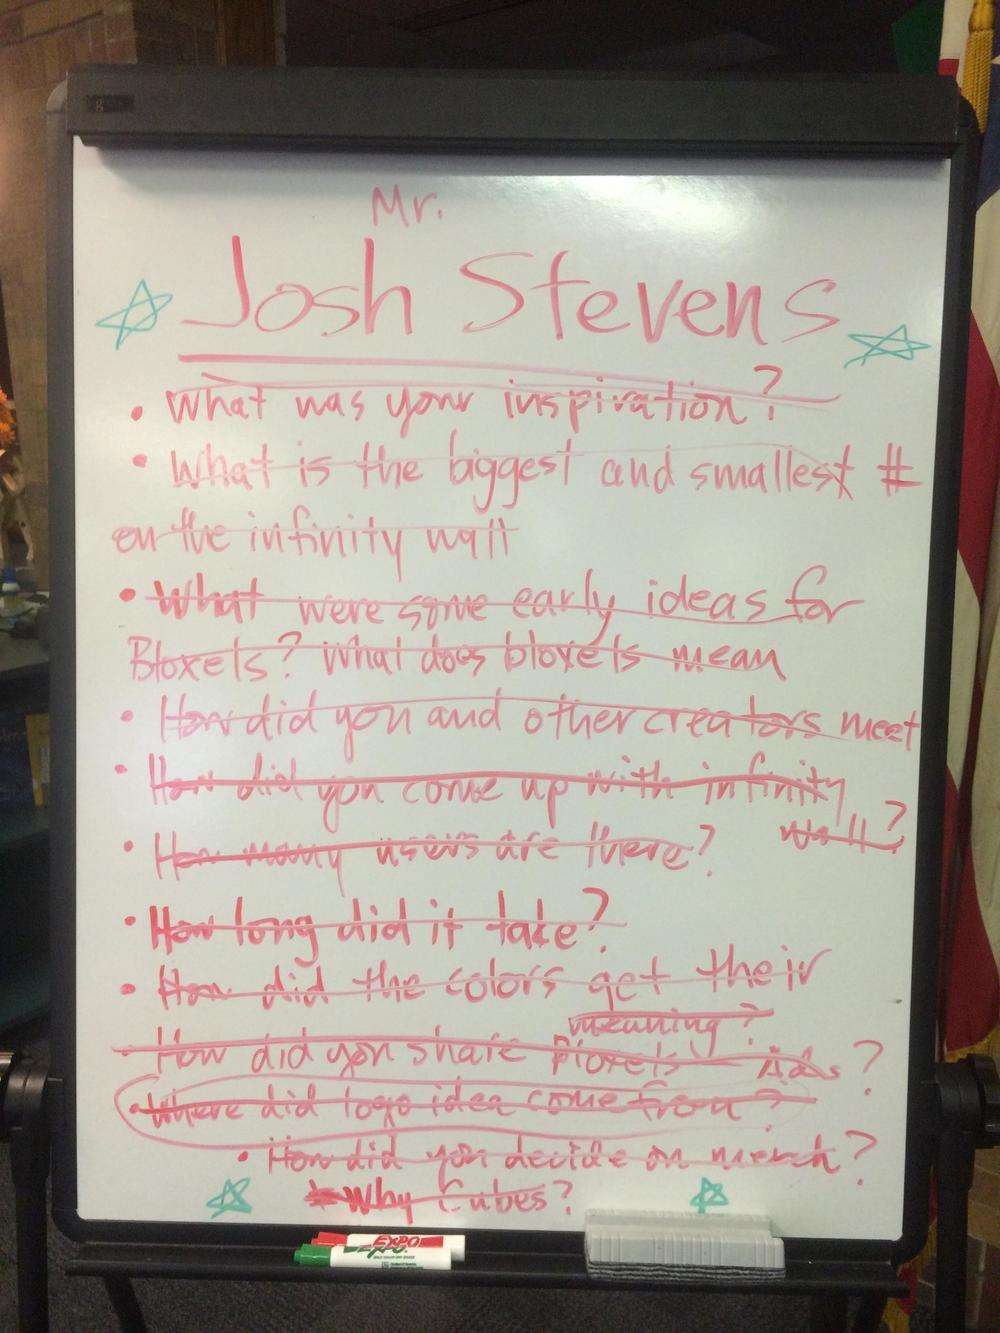 A list of questions for Josh to answer